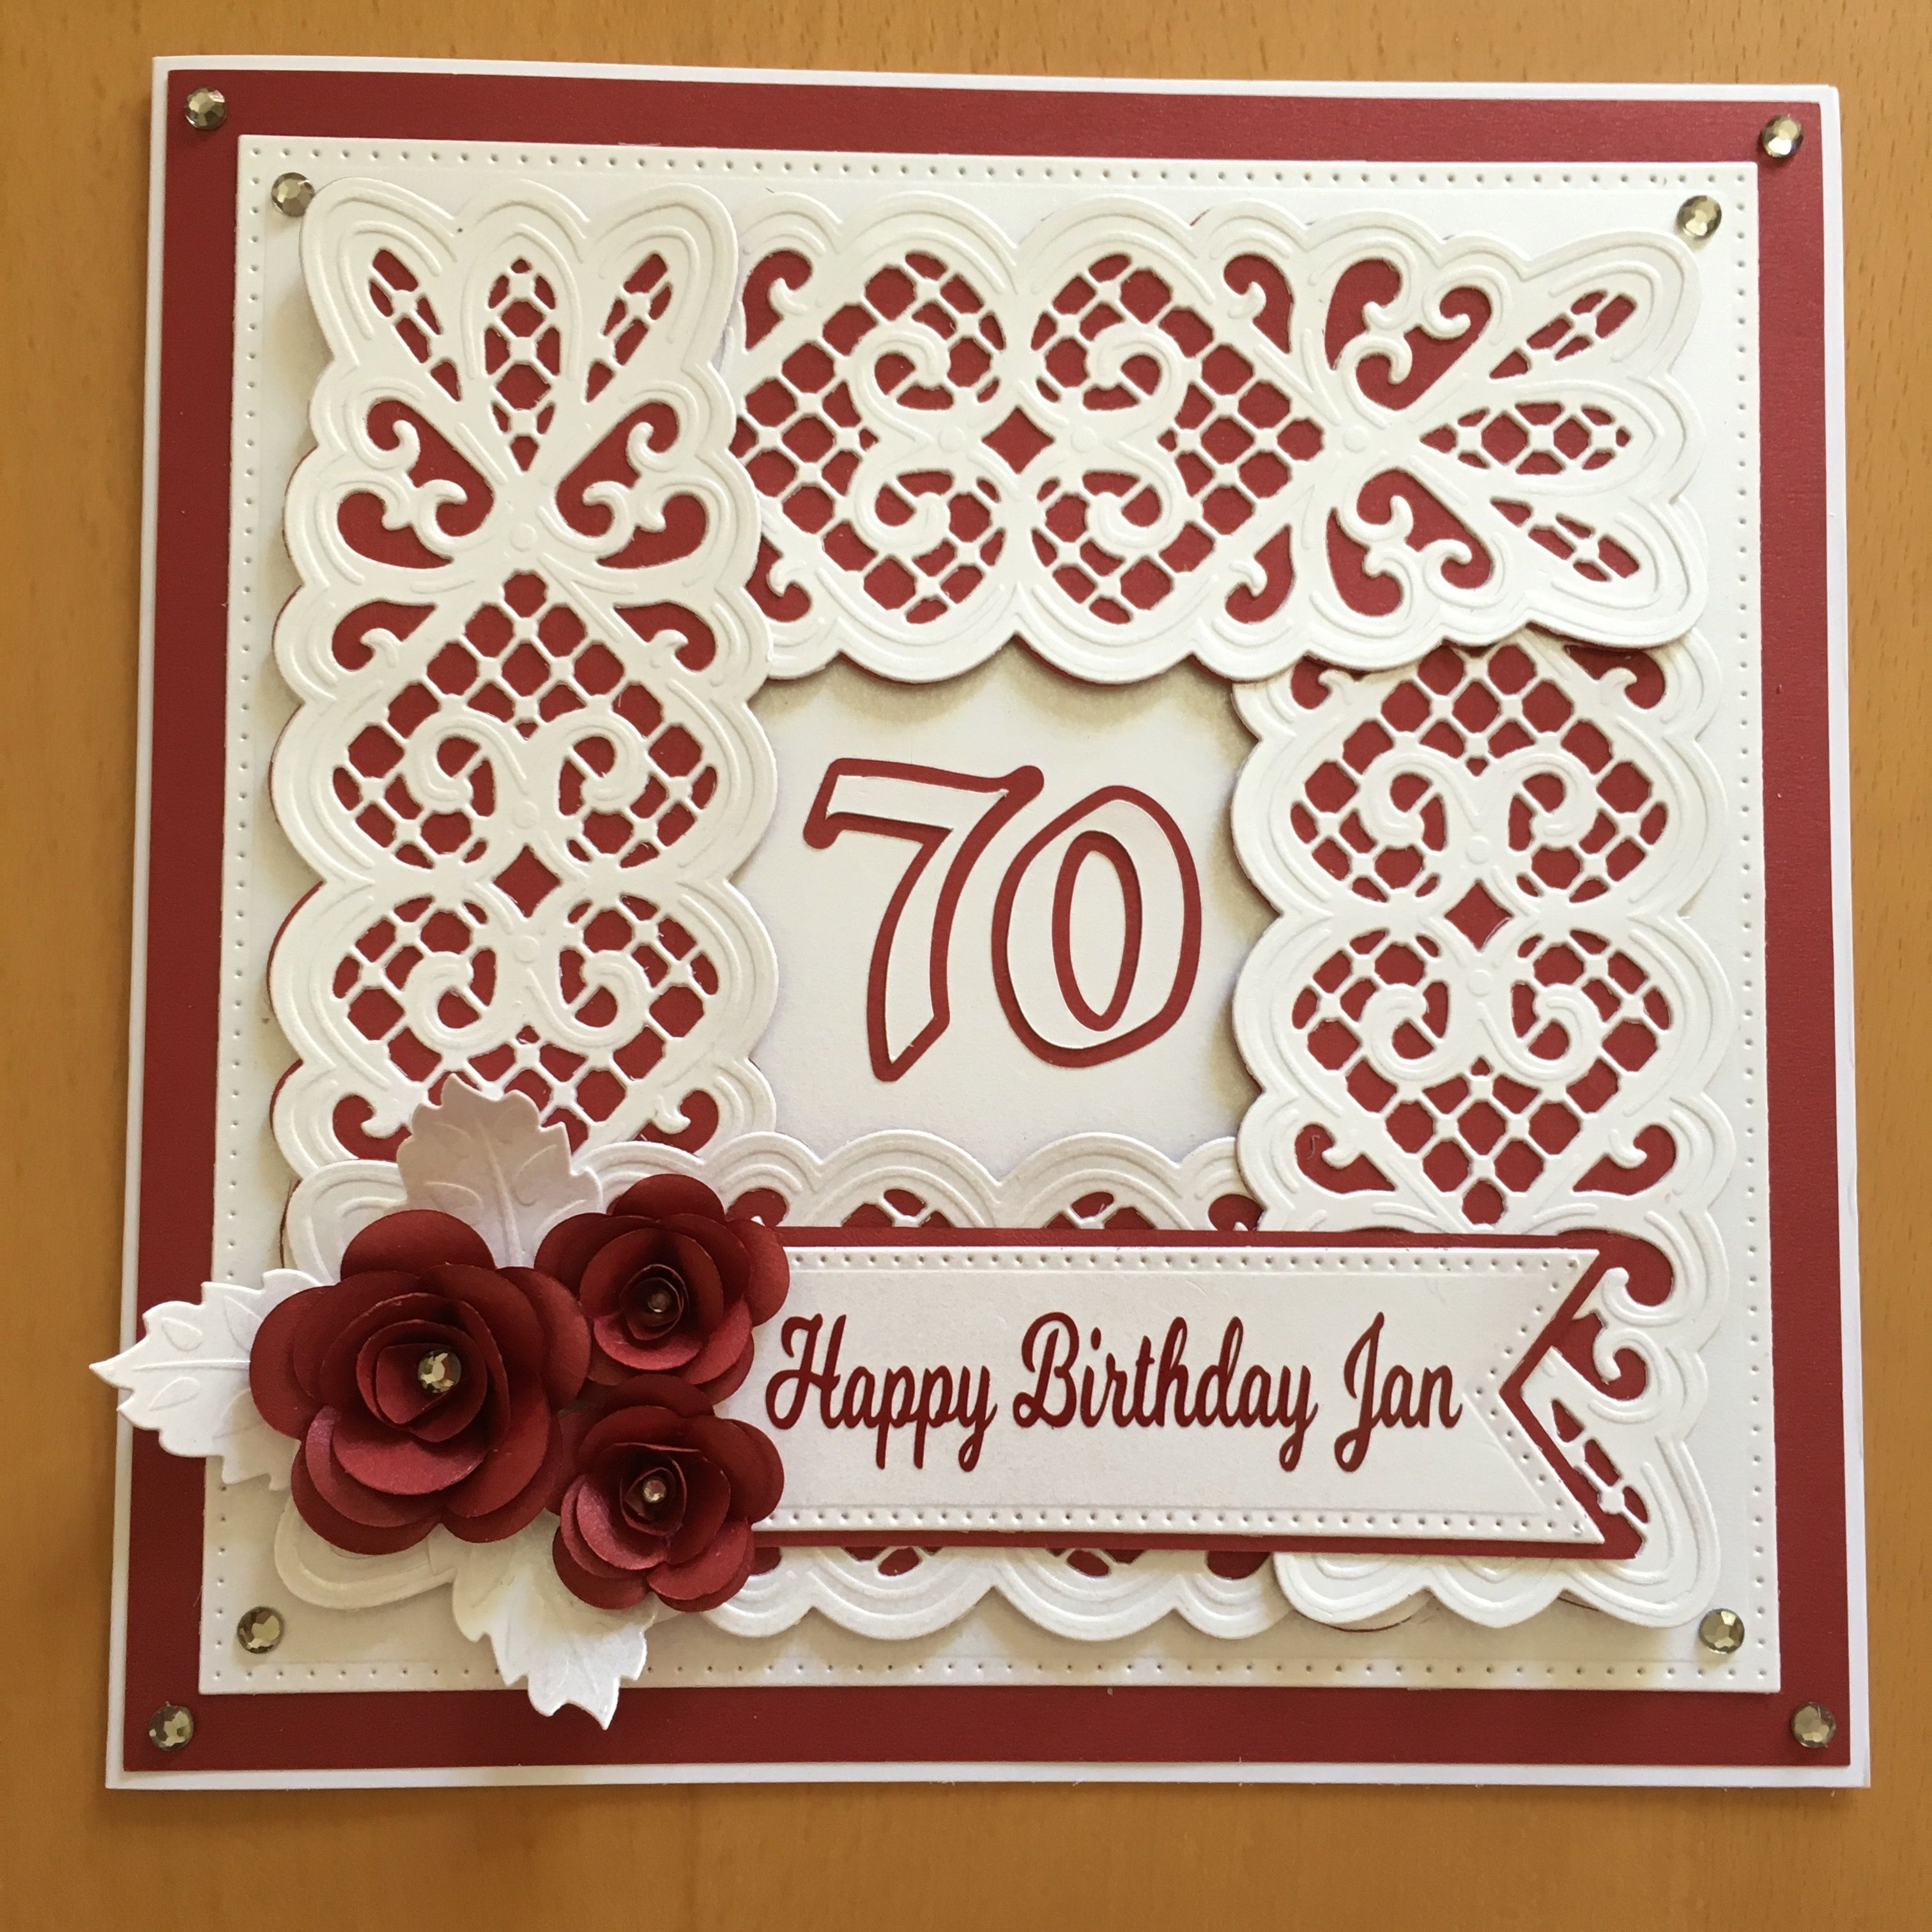 A 70th Birthday Card Made Using Sue Wilson Dies And A Silhouette